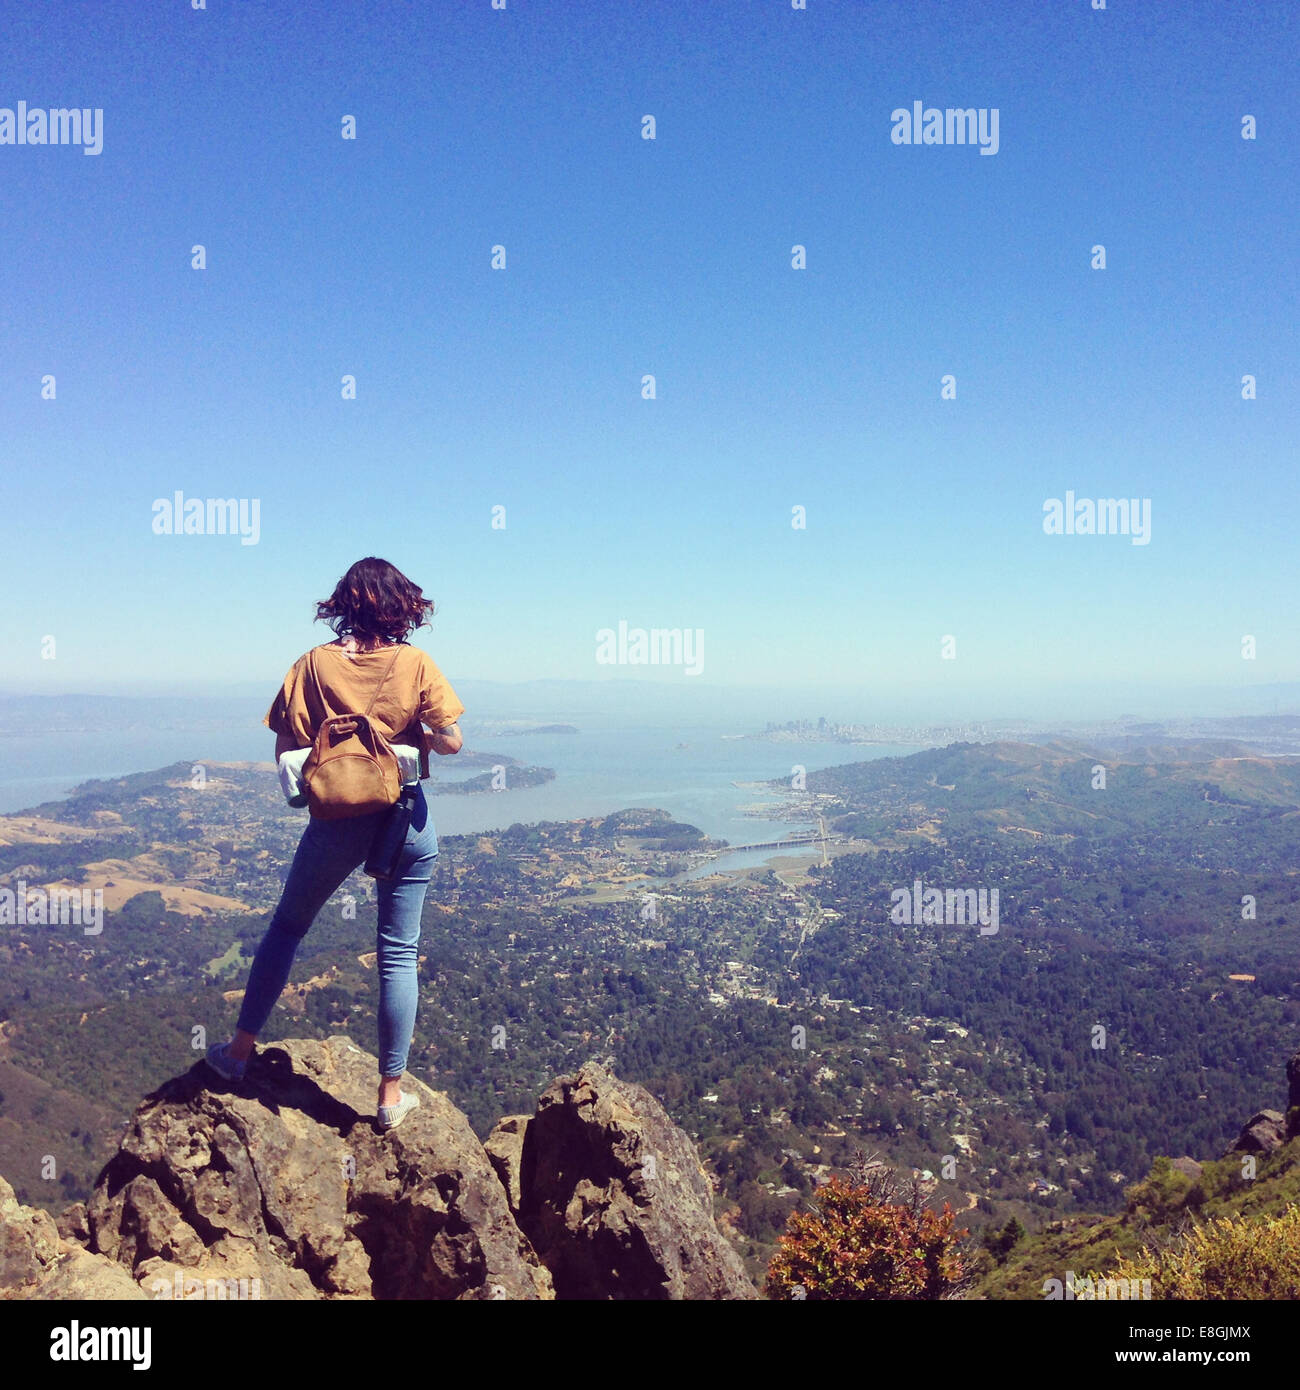 Woman standing on Mount Tamalpais looking at city, San Francisco, California, America, USA - Stock Image